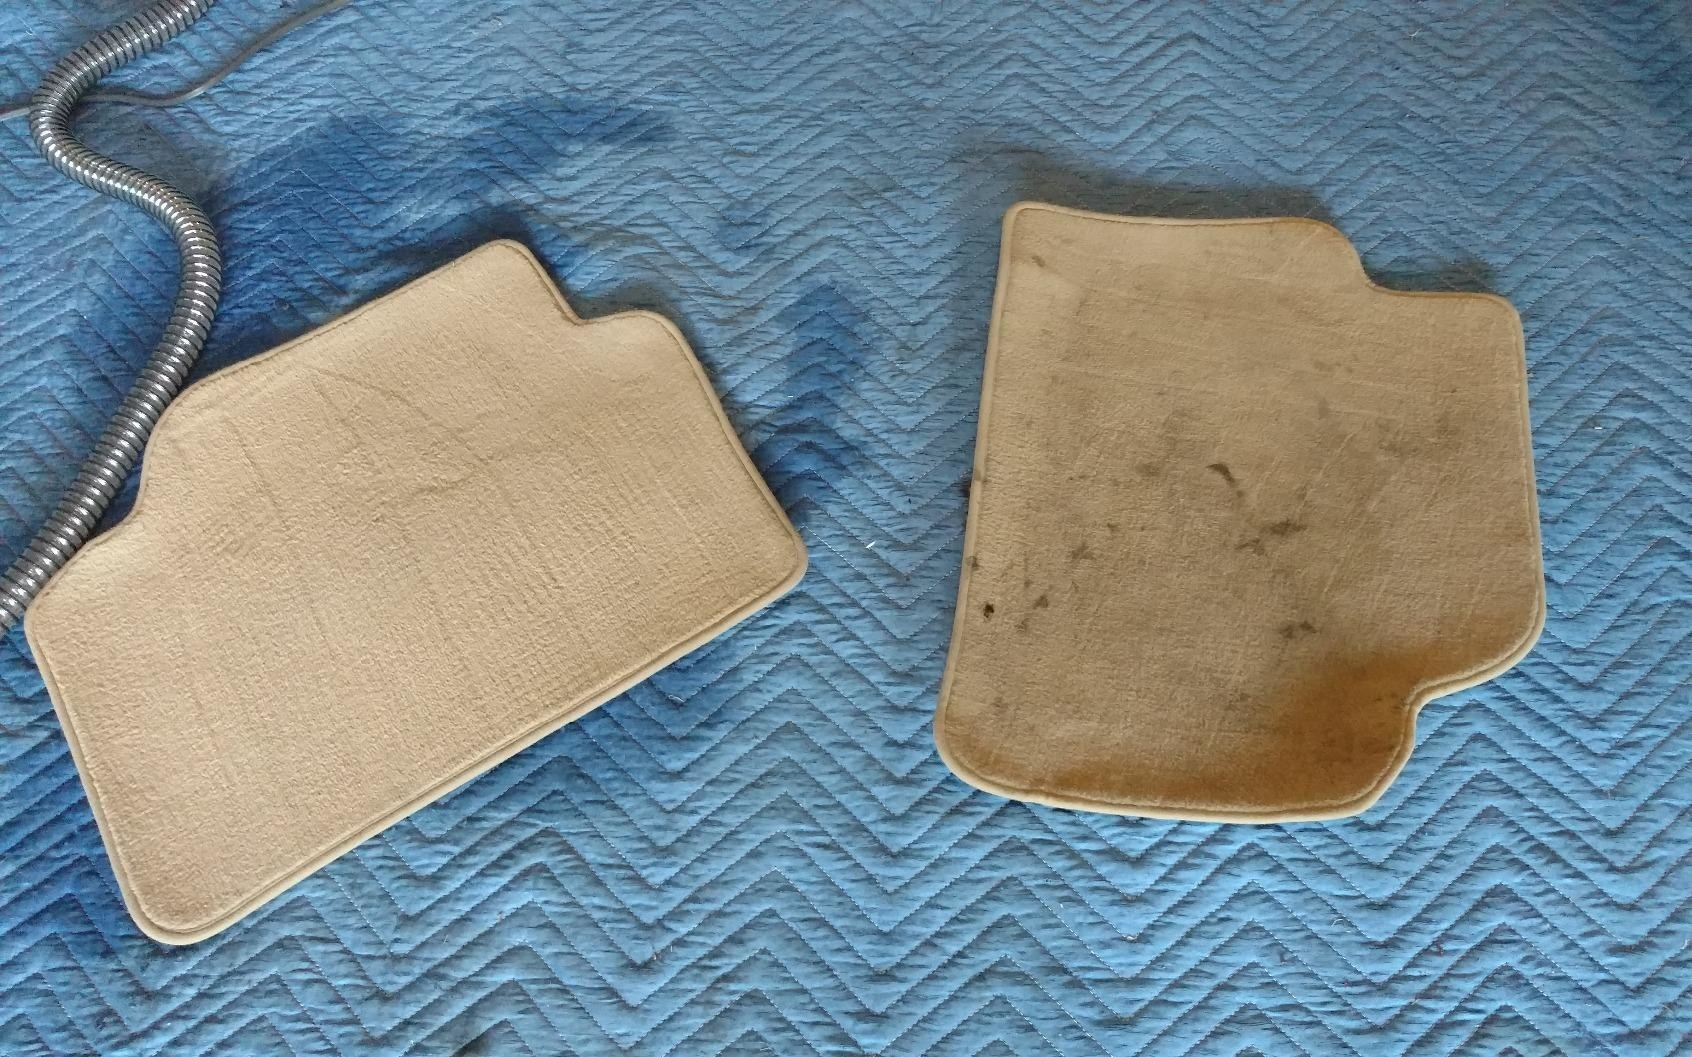 Reviewer's photo of their car floor pads before and after cleaning with the Hoover cleaner